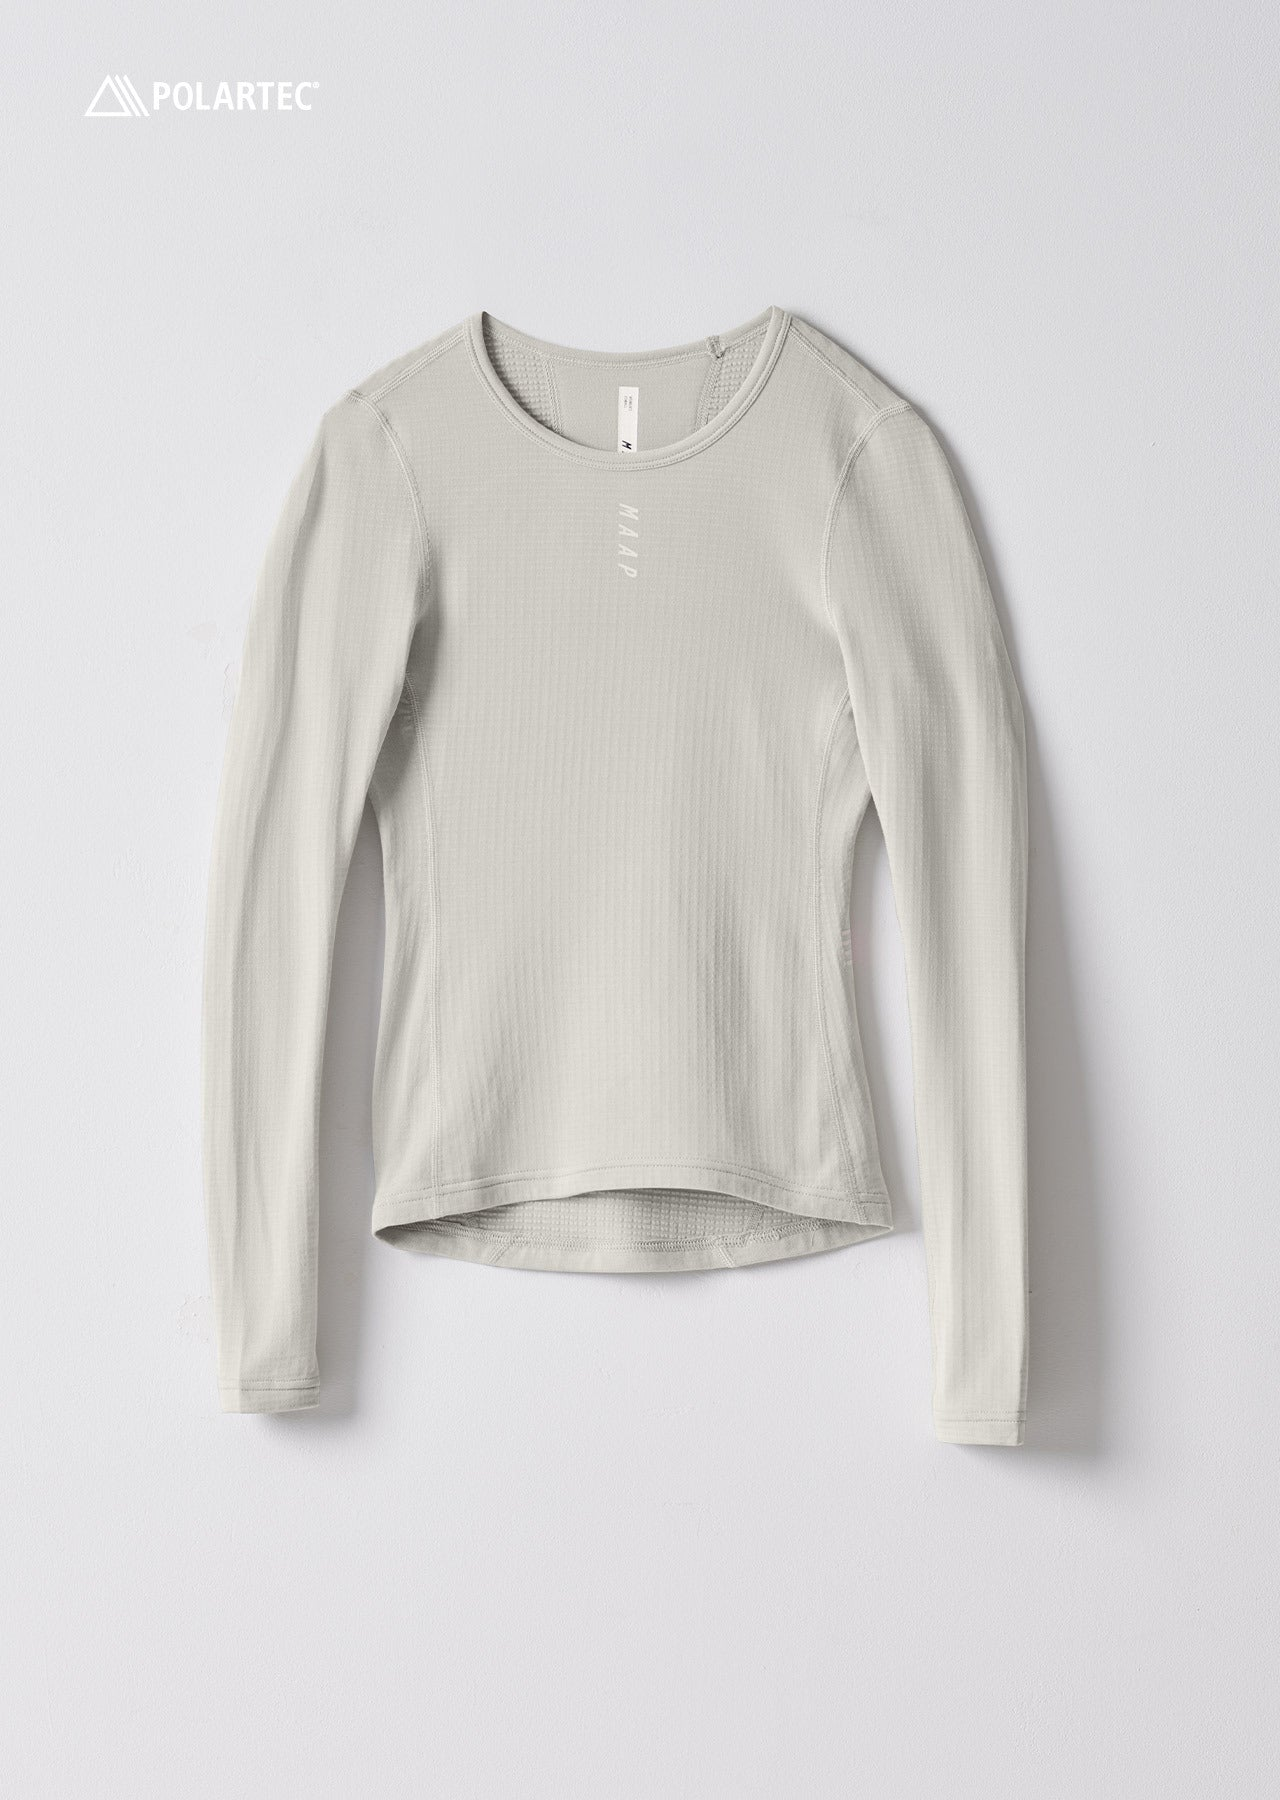 Women's Thermal Base Layer LS Tee